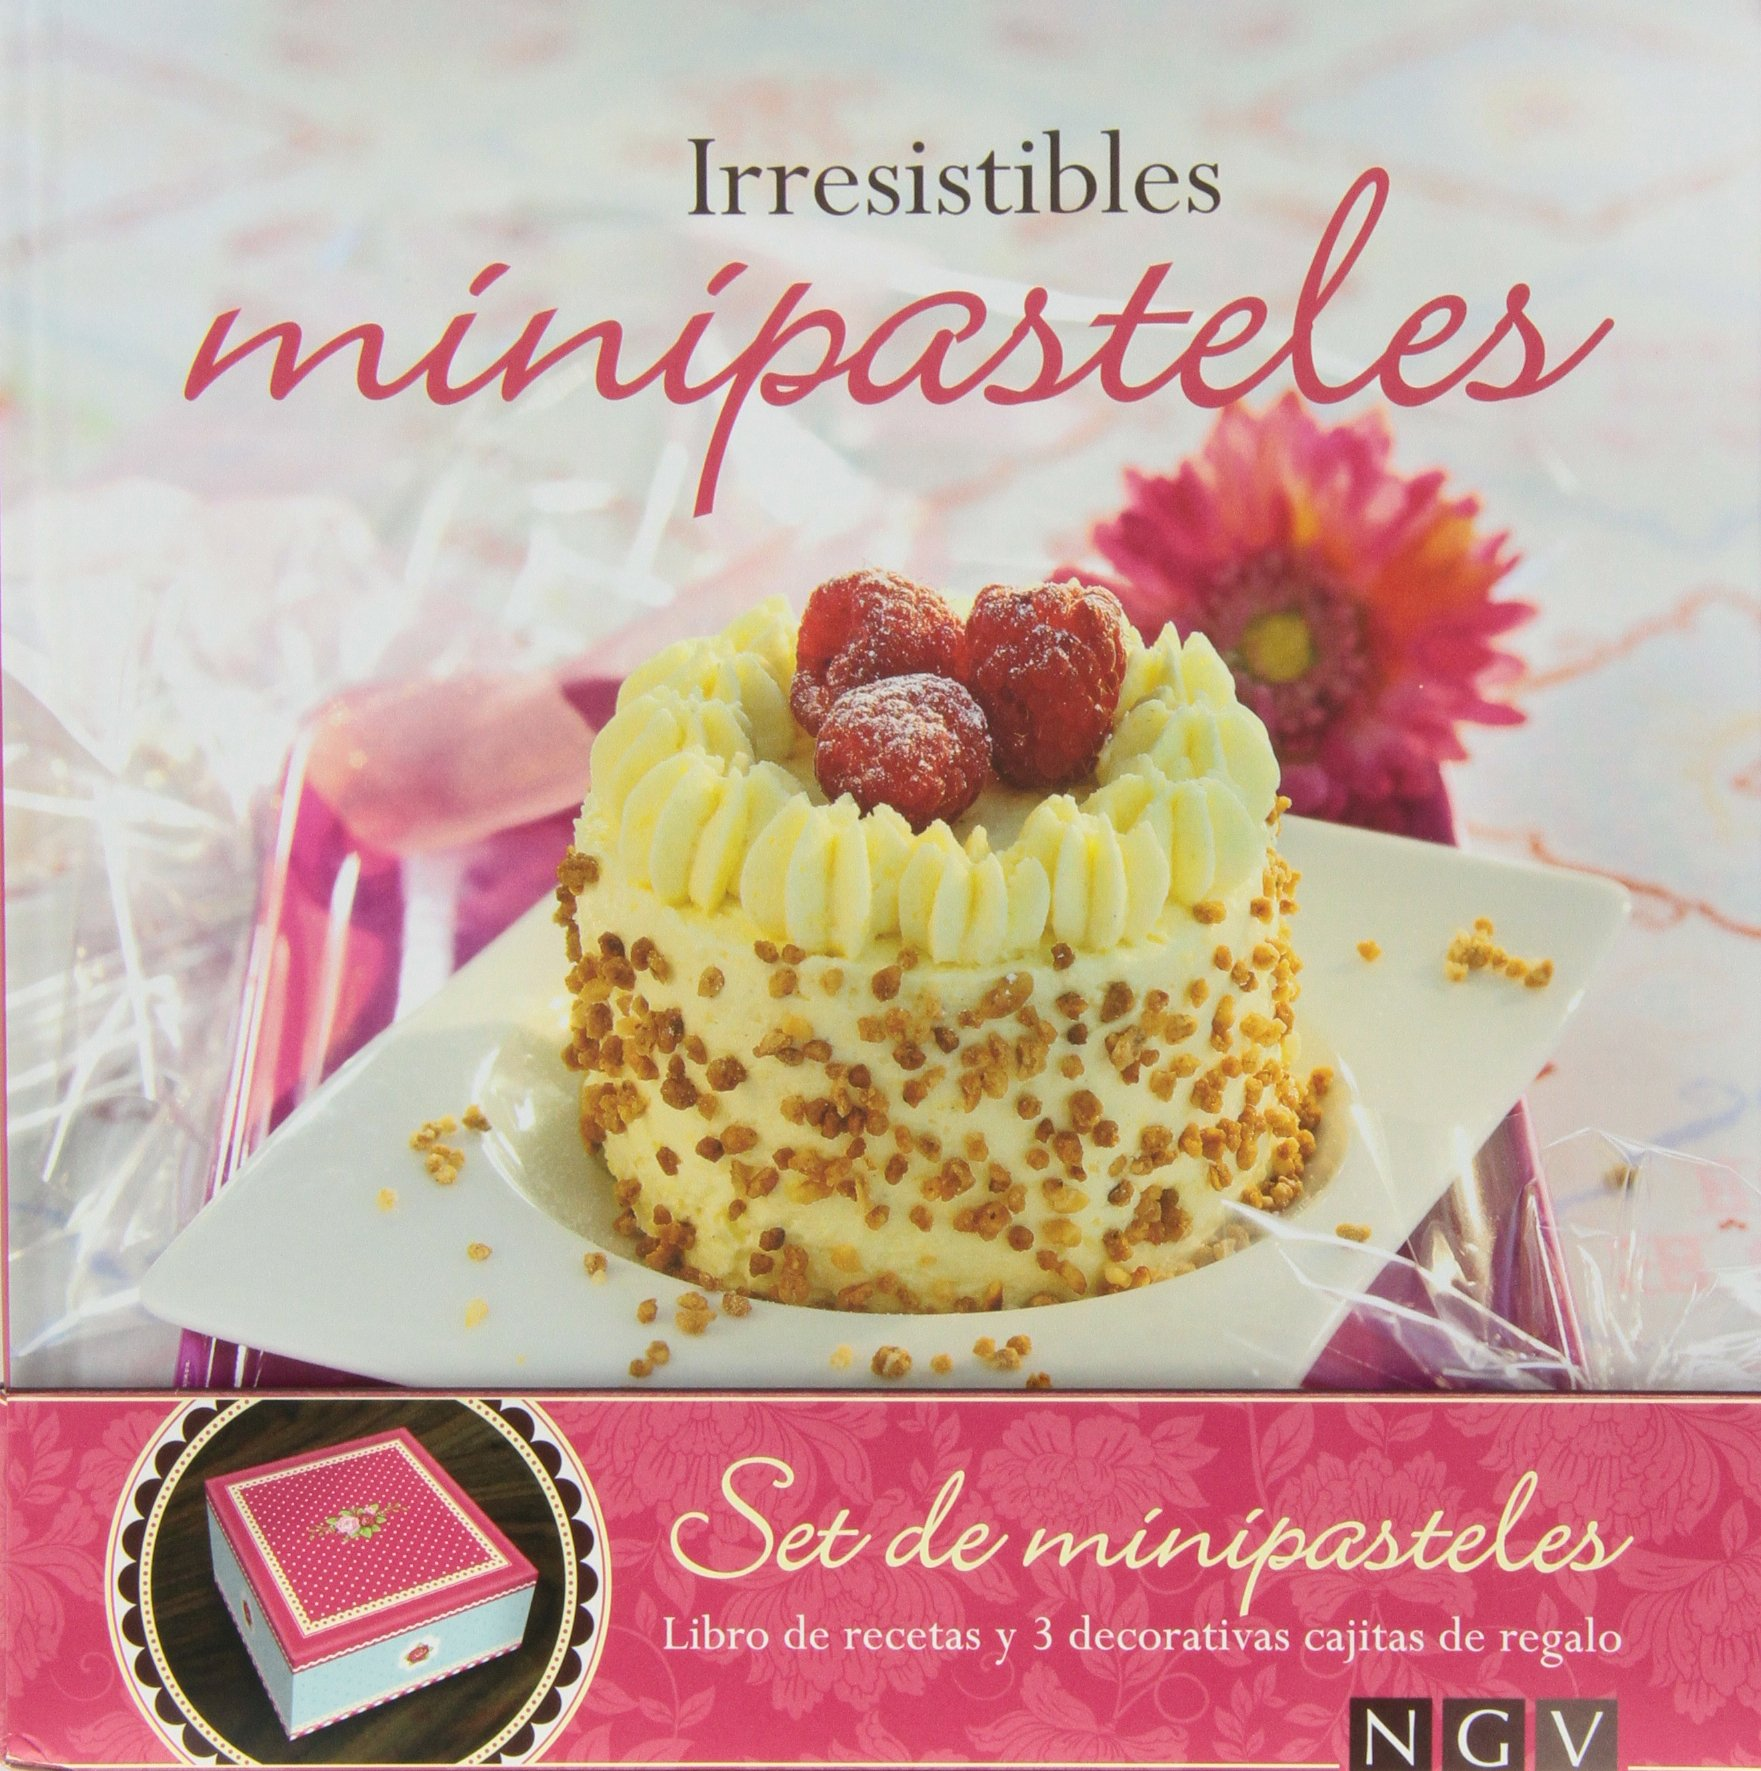 IRRESISTIBLES MINIPASTELES: VARIOS(003250): 9783625003250: Amazon.com: Books